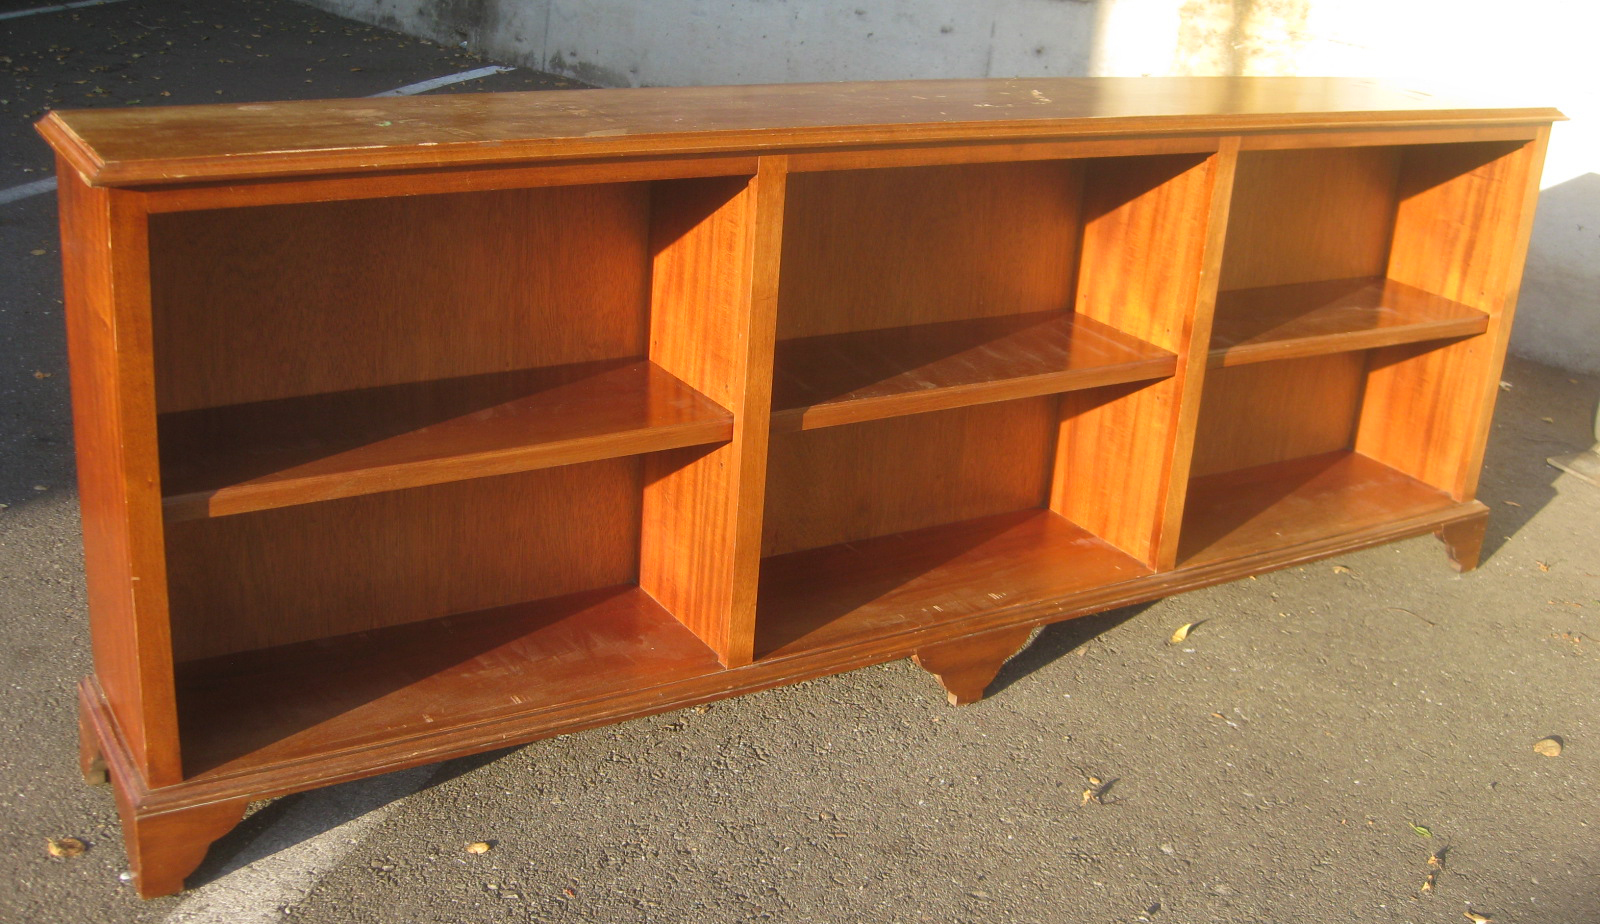 Sold long low wooden bookcase 90